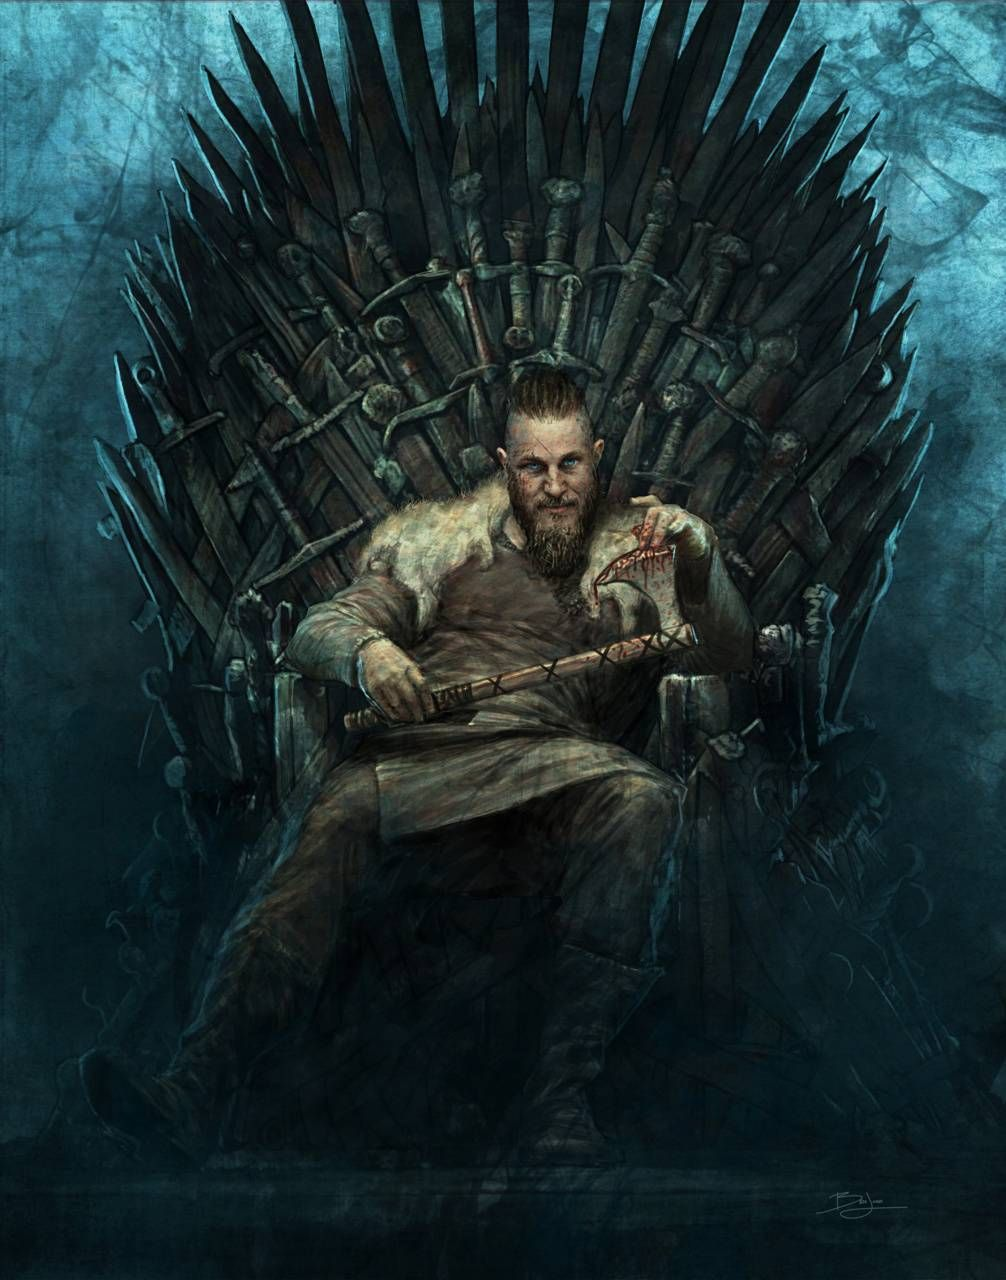 Download Ragnar Of Thrones Wallpaper By Calderon1209 4e Free On Zedge Now Browse Millions Of Popular Game Wallpapers King Ragnar Art Digital Art Gallery